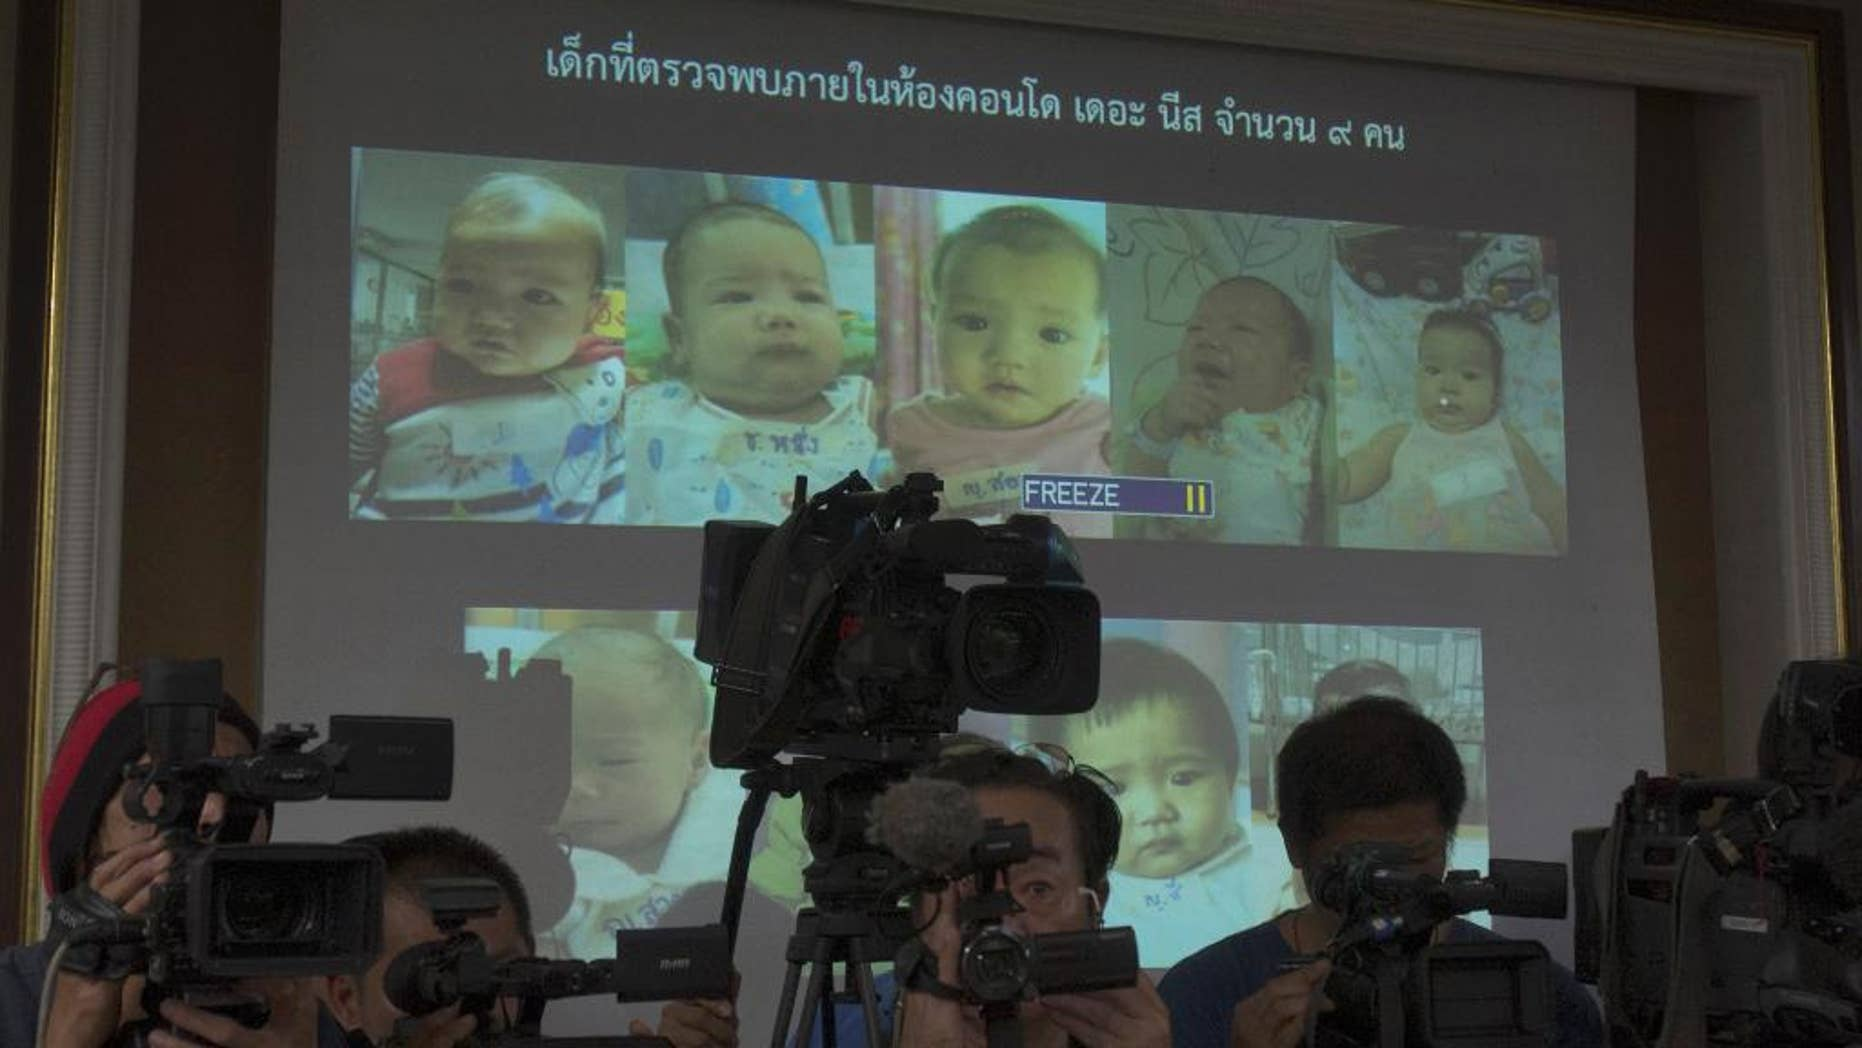 FILE - In this Aug. 12, 2014 file photo, the media cover as Thai police display pictures of surrogate babies born to a Japanese man who is at the center of a surrogacy scandal during a press conference at the police headquarters in Chonburi, Thailand. Officials said Wednesday, Jan. 14, 2015 the surrogate mothers of 13 babies fathered by a Japanese businessman launched a lawsuit against the Thai authorities and sought to regain custody of the children. (AP Photo/Sakchai Lalit, File)